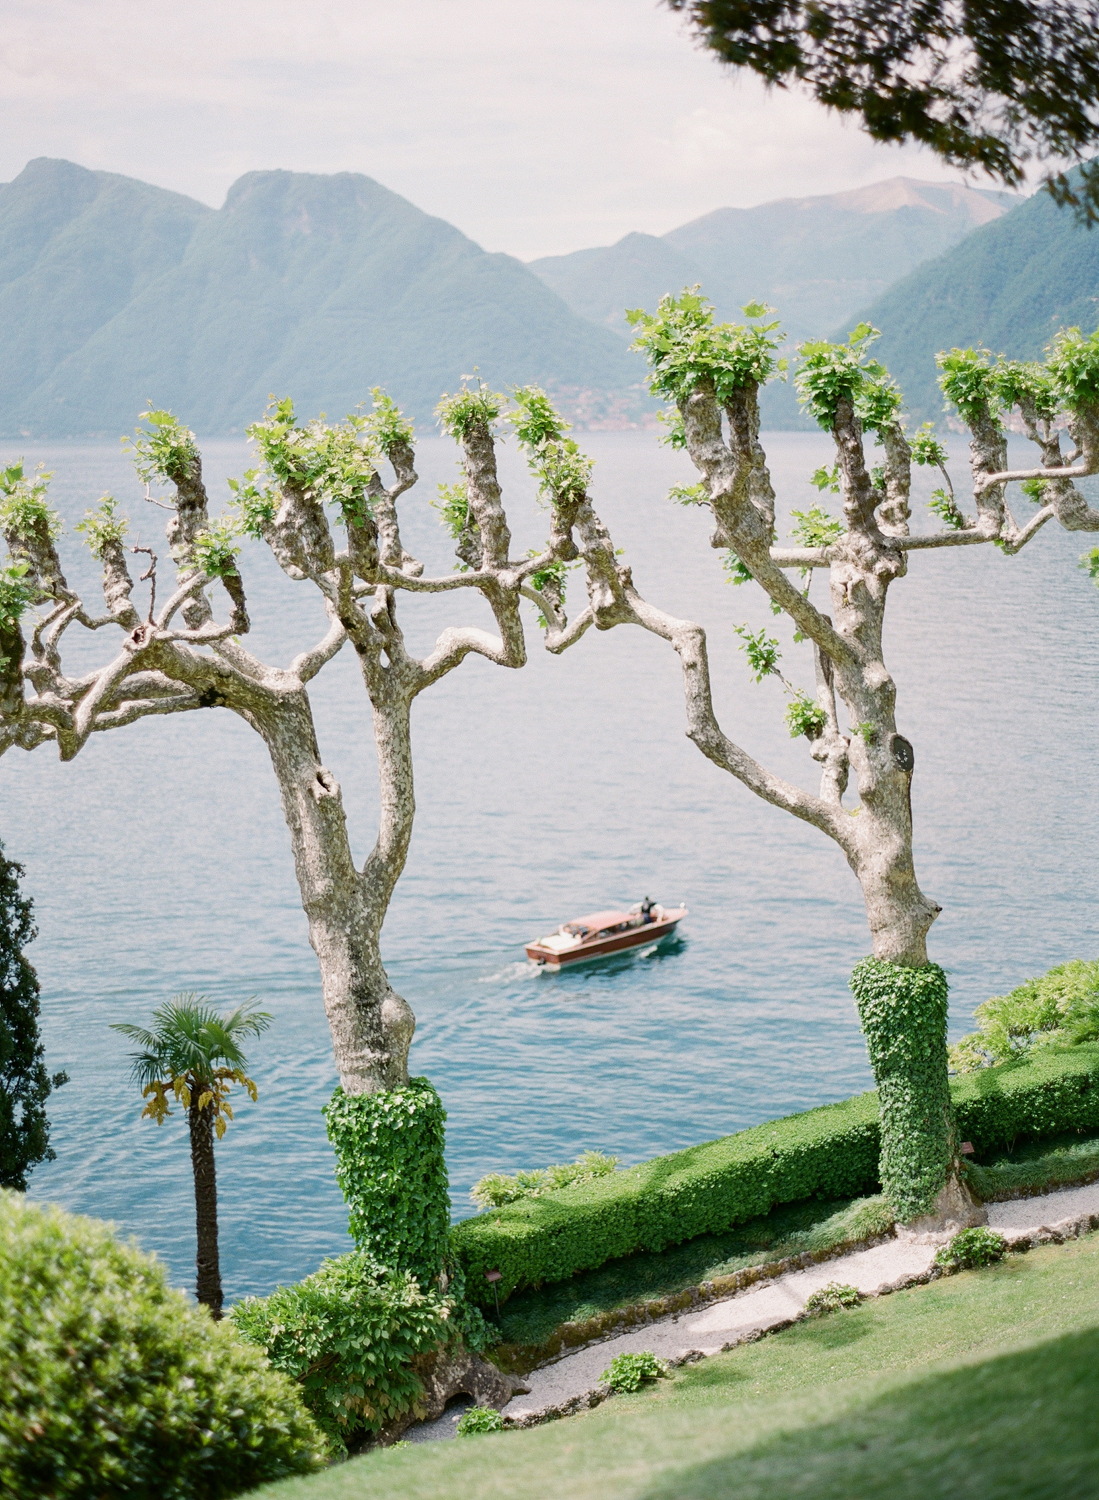 villa_del_balbaniello_lake_como_wedding_photographer_italy_film_wedding_nikol_bodnarova_photography_04.JPG